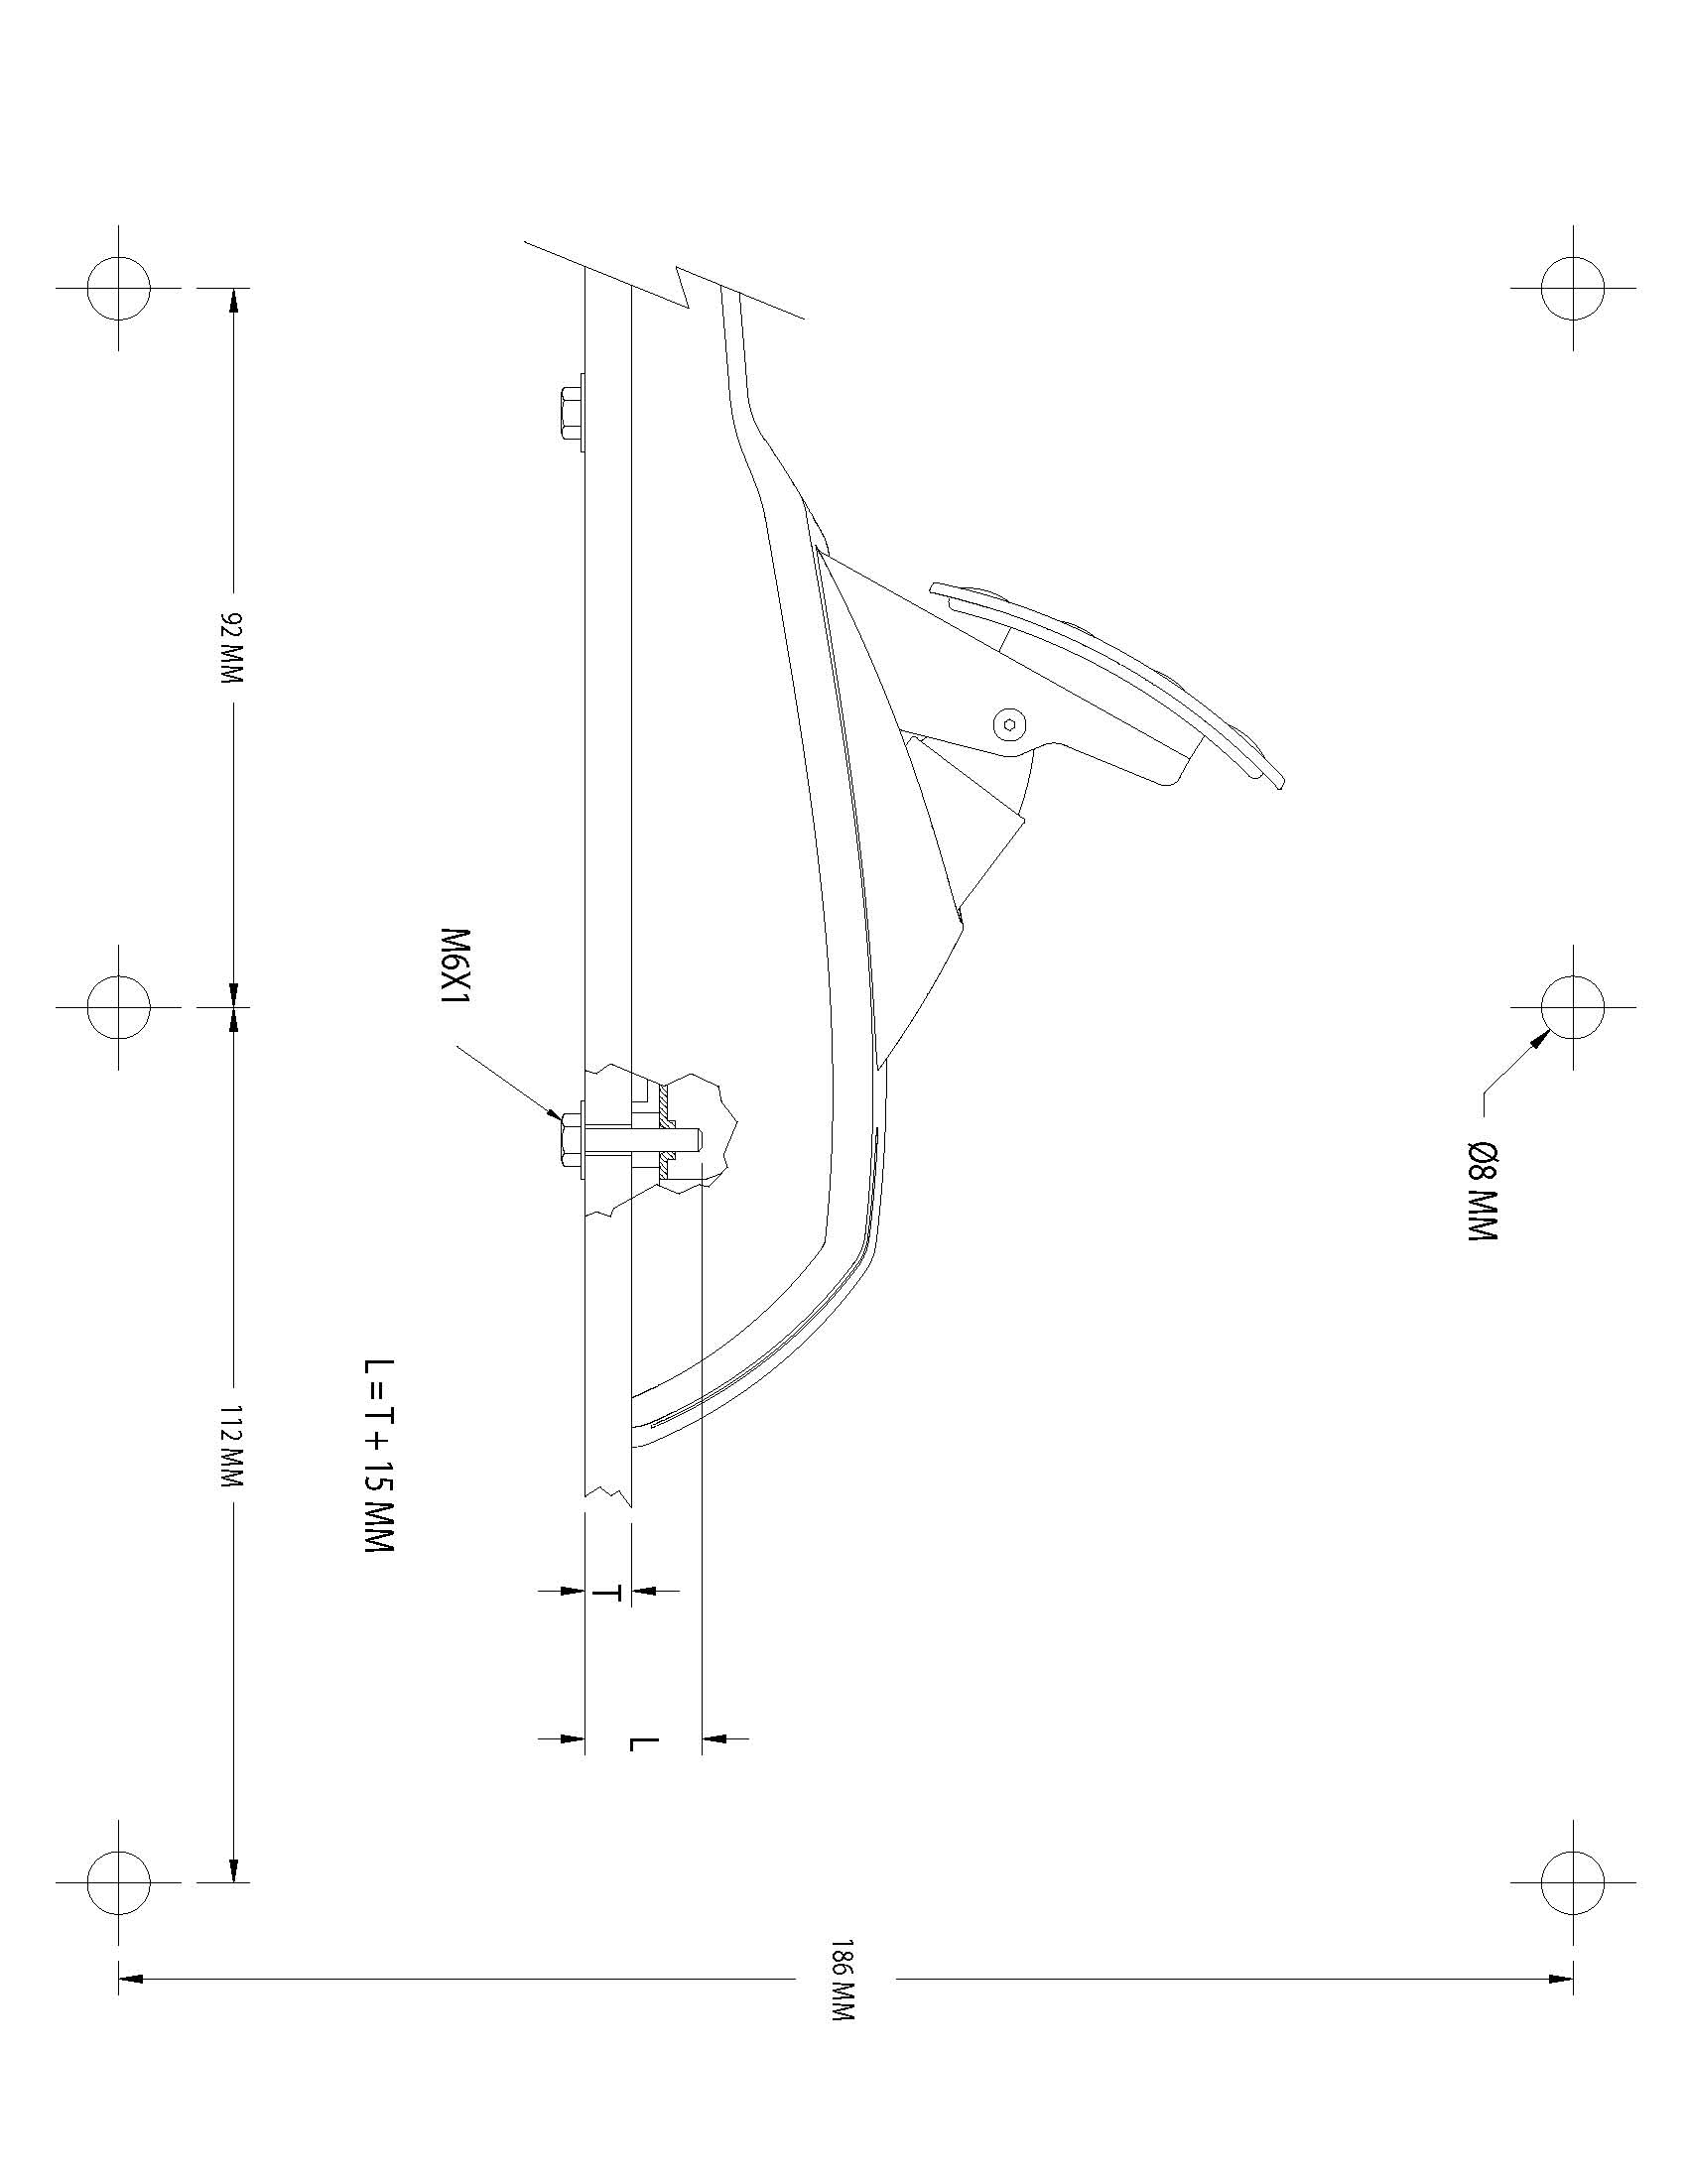 G27 Shifter Wiring Diagram Detailed Diagrams Logitech Quickcam Mounting The Or G25 Using Built In Points G19